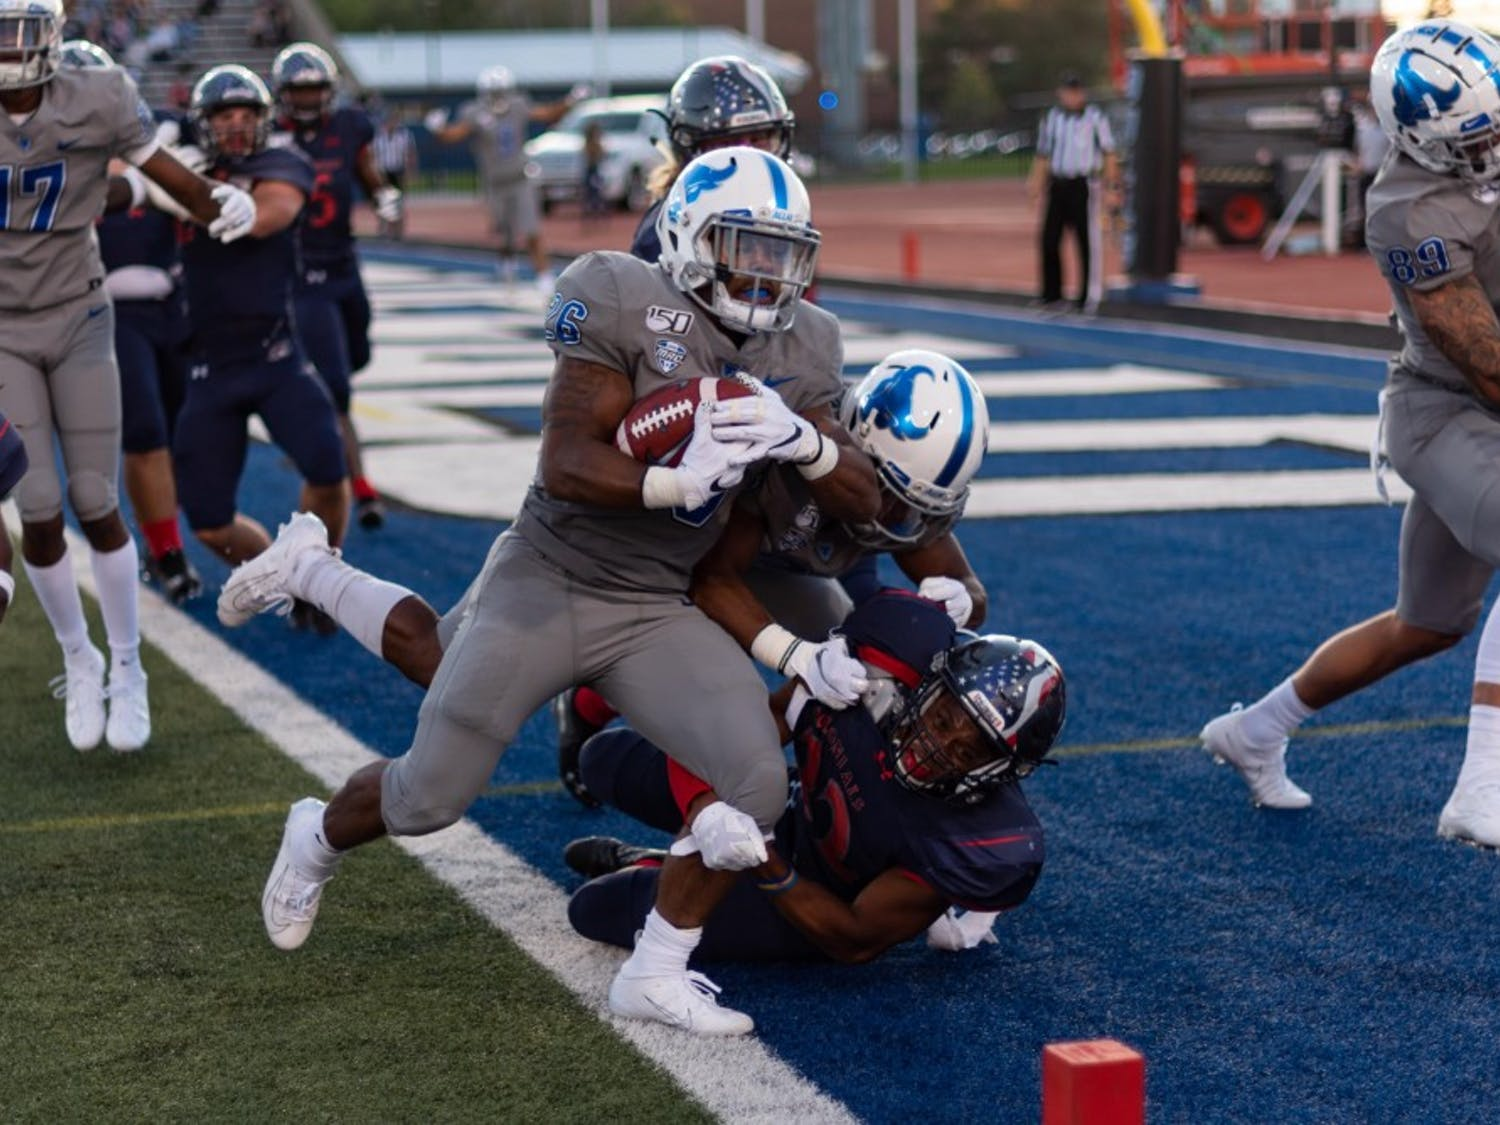 UB running back Jaret Patterson takes one to the end zone last season as the Bulls defeated Robert Morris 38-10.